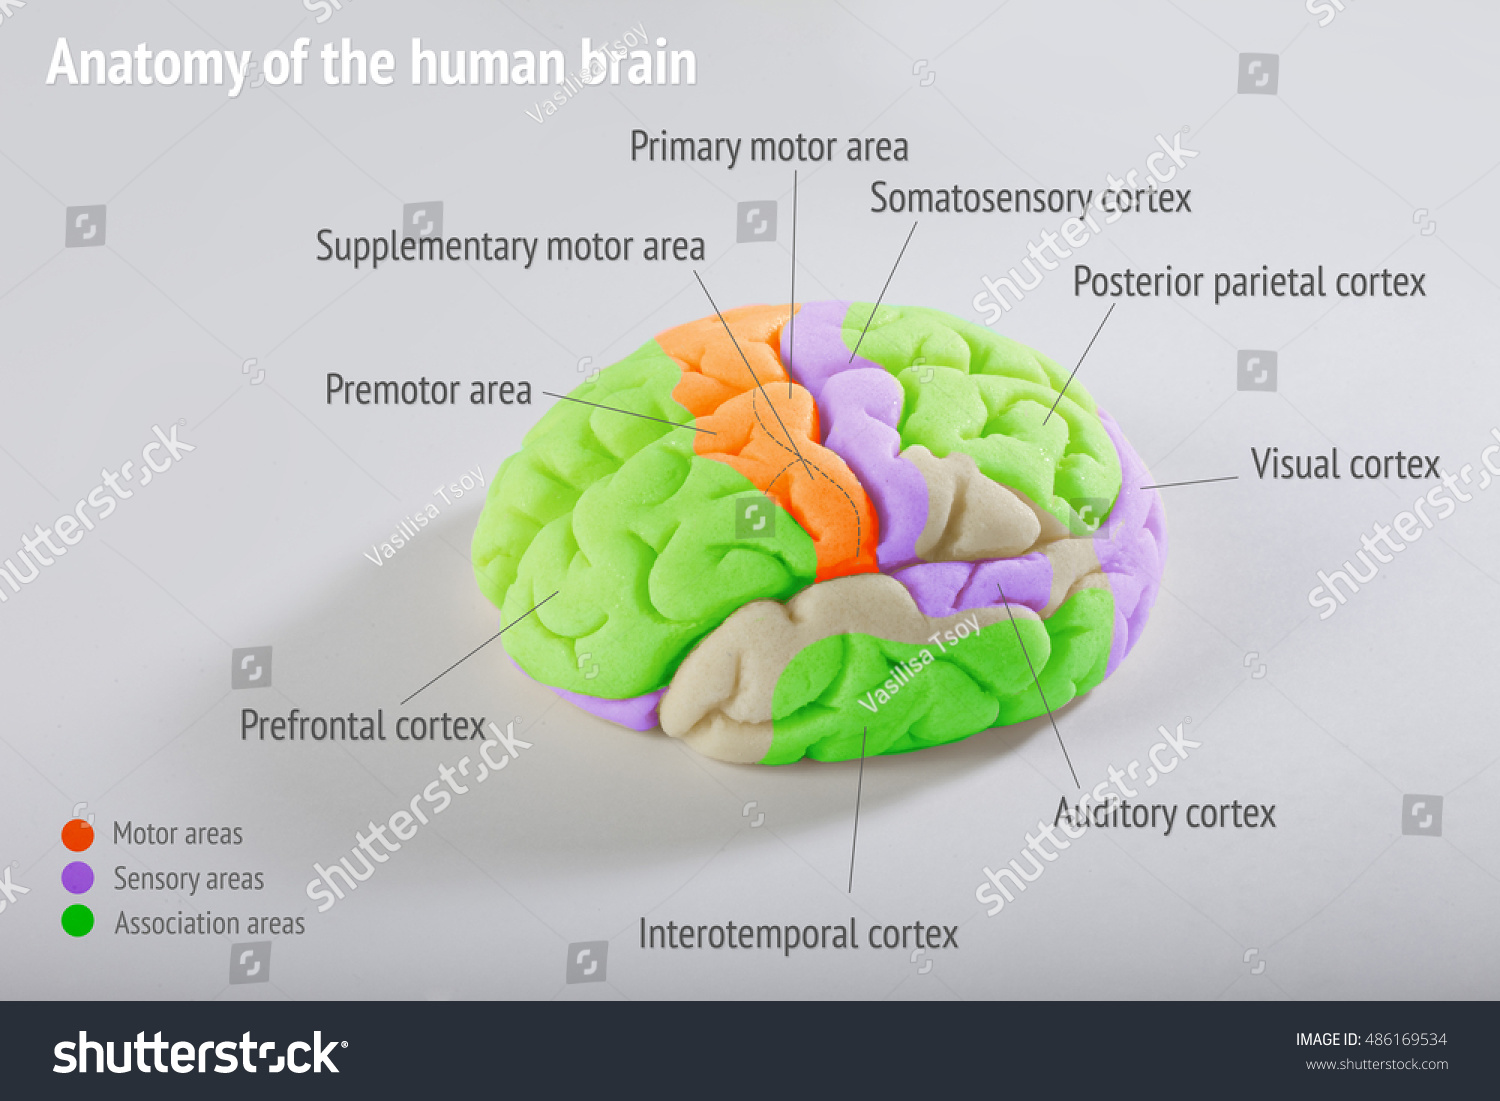 Anatomy Human Brain Areas Cerebral Cortex Foto de stock (editar ...